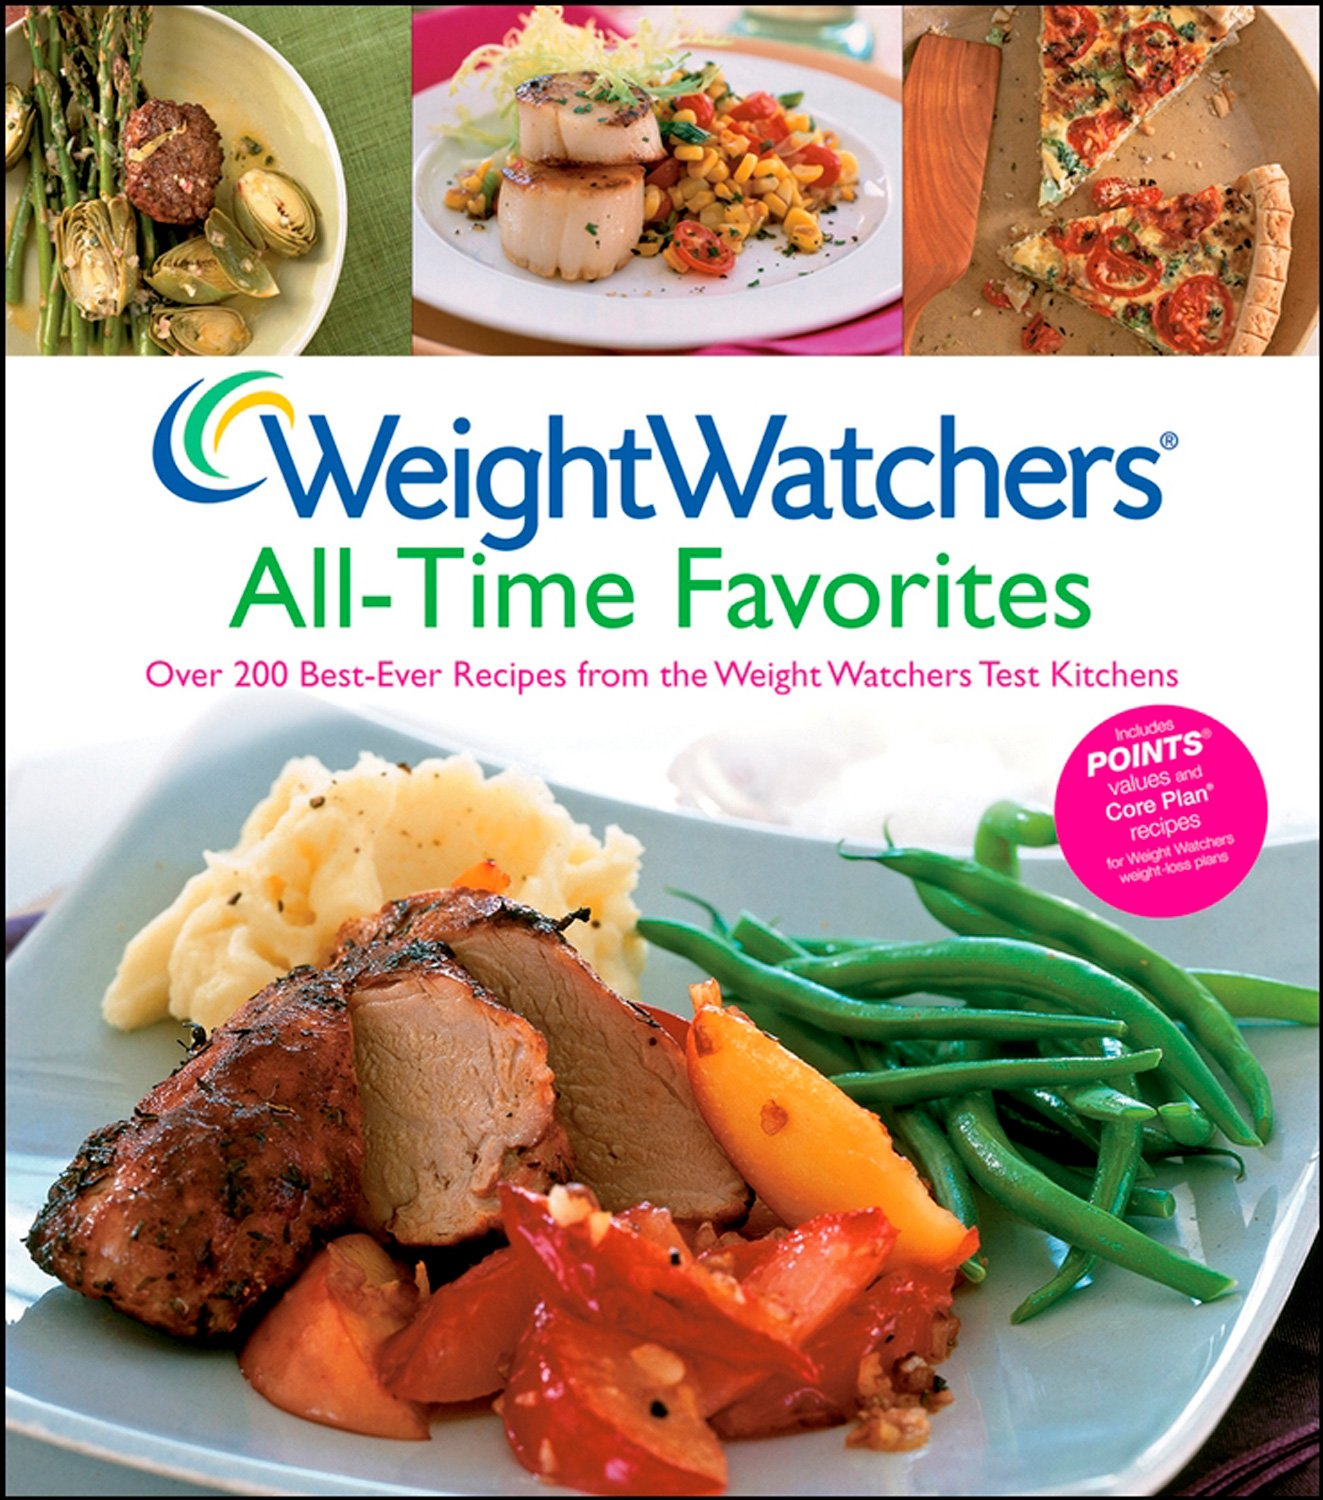 Read Online Weight Watchers All-Time Favorites: Over 200 Best-Ever Recipes from the Weight Watchers Test Kitchens pdf epub